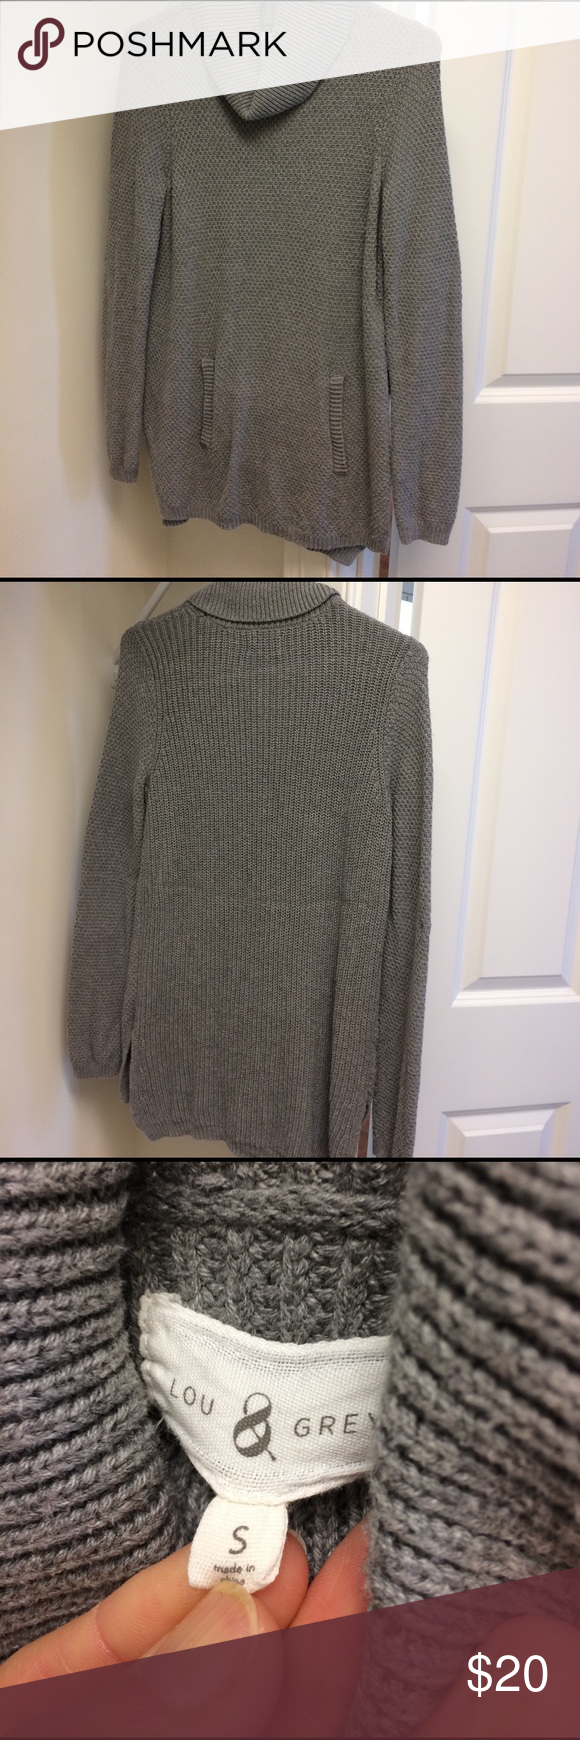 """Lou & Grey long Tunic sweater Lou & Grey cowl neck cotton 53% rayon 40% nylon 7% soft sweater. Length 29"""" front 31"""" back with pocket in front. Gently worn. No signs of wear. Smoke and pet free home. Lou & Grey Sweaters Cowl & Turtlenecks"""